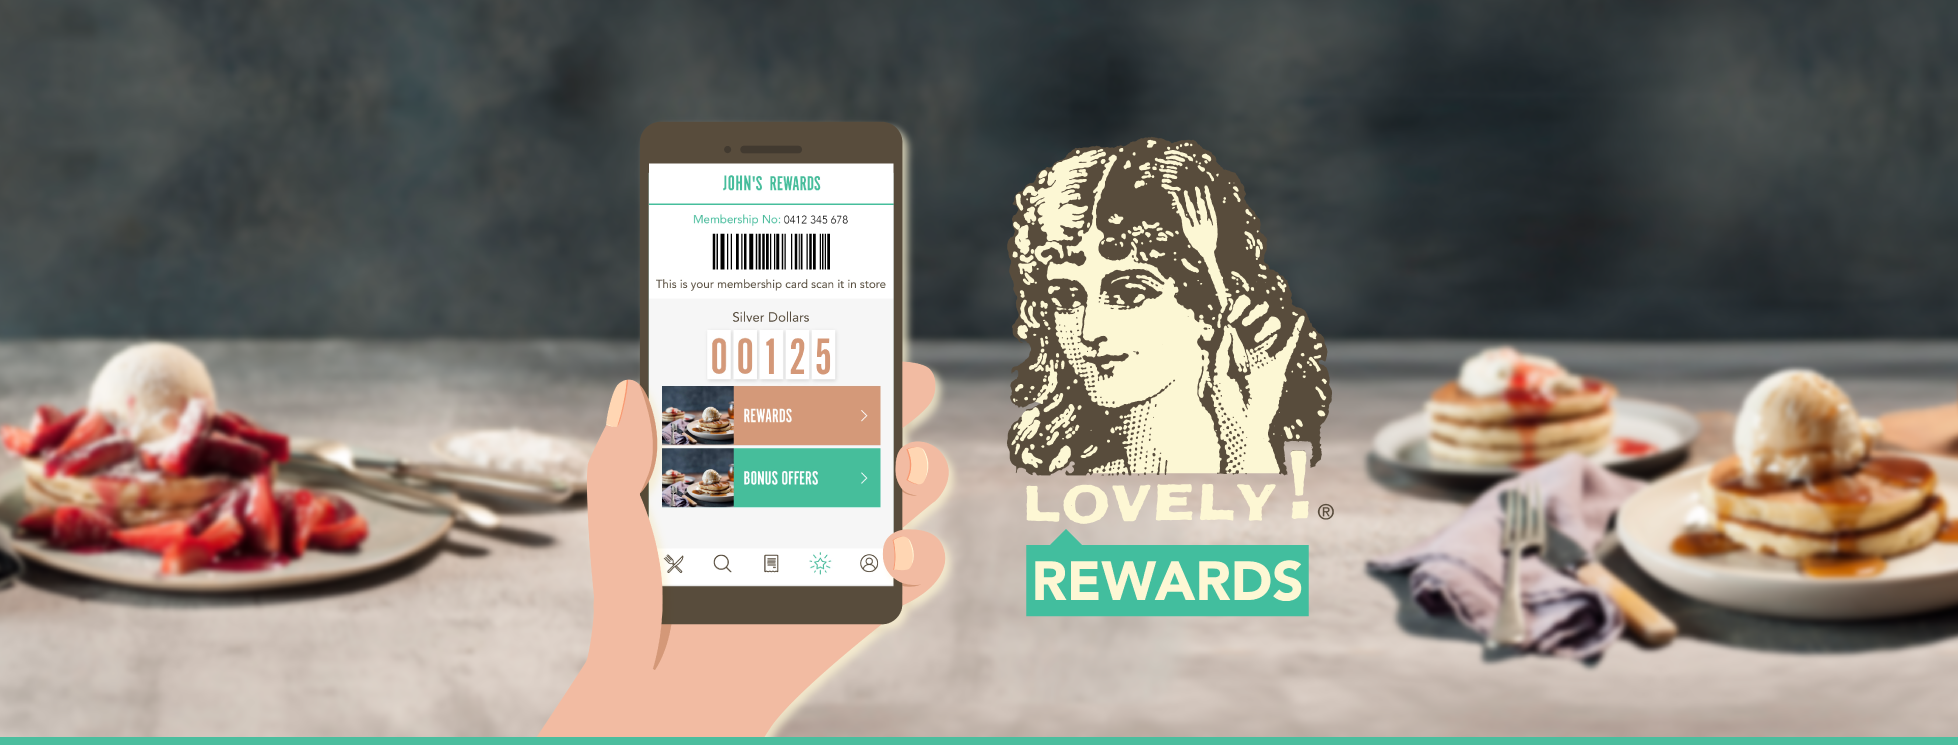 TPP-app-launch-lovely-rewards-landing-V2.png